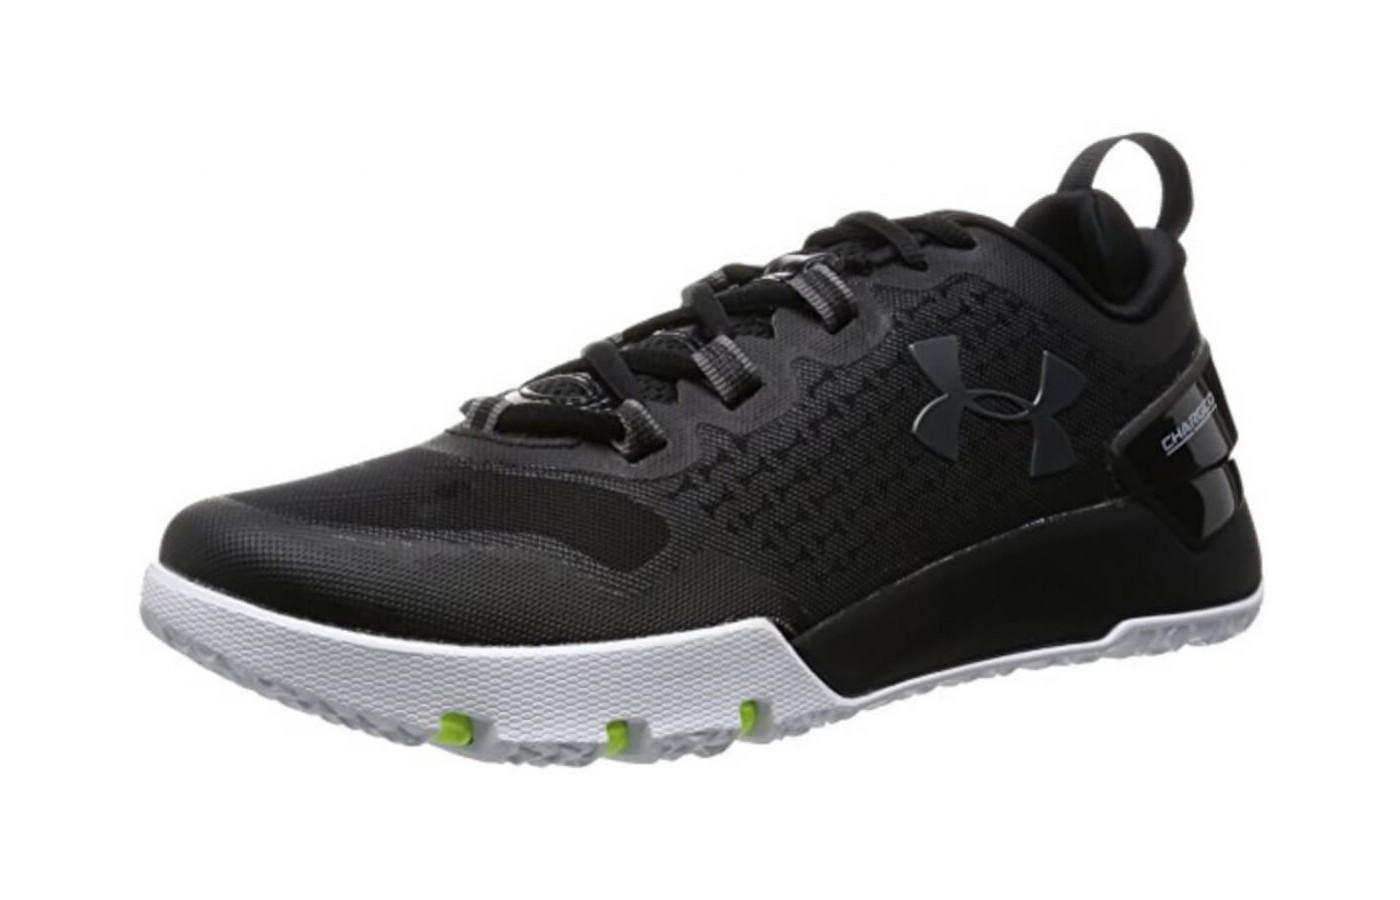 Under Armour Charged Ultimate upper left